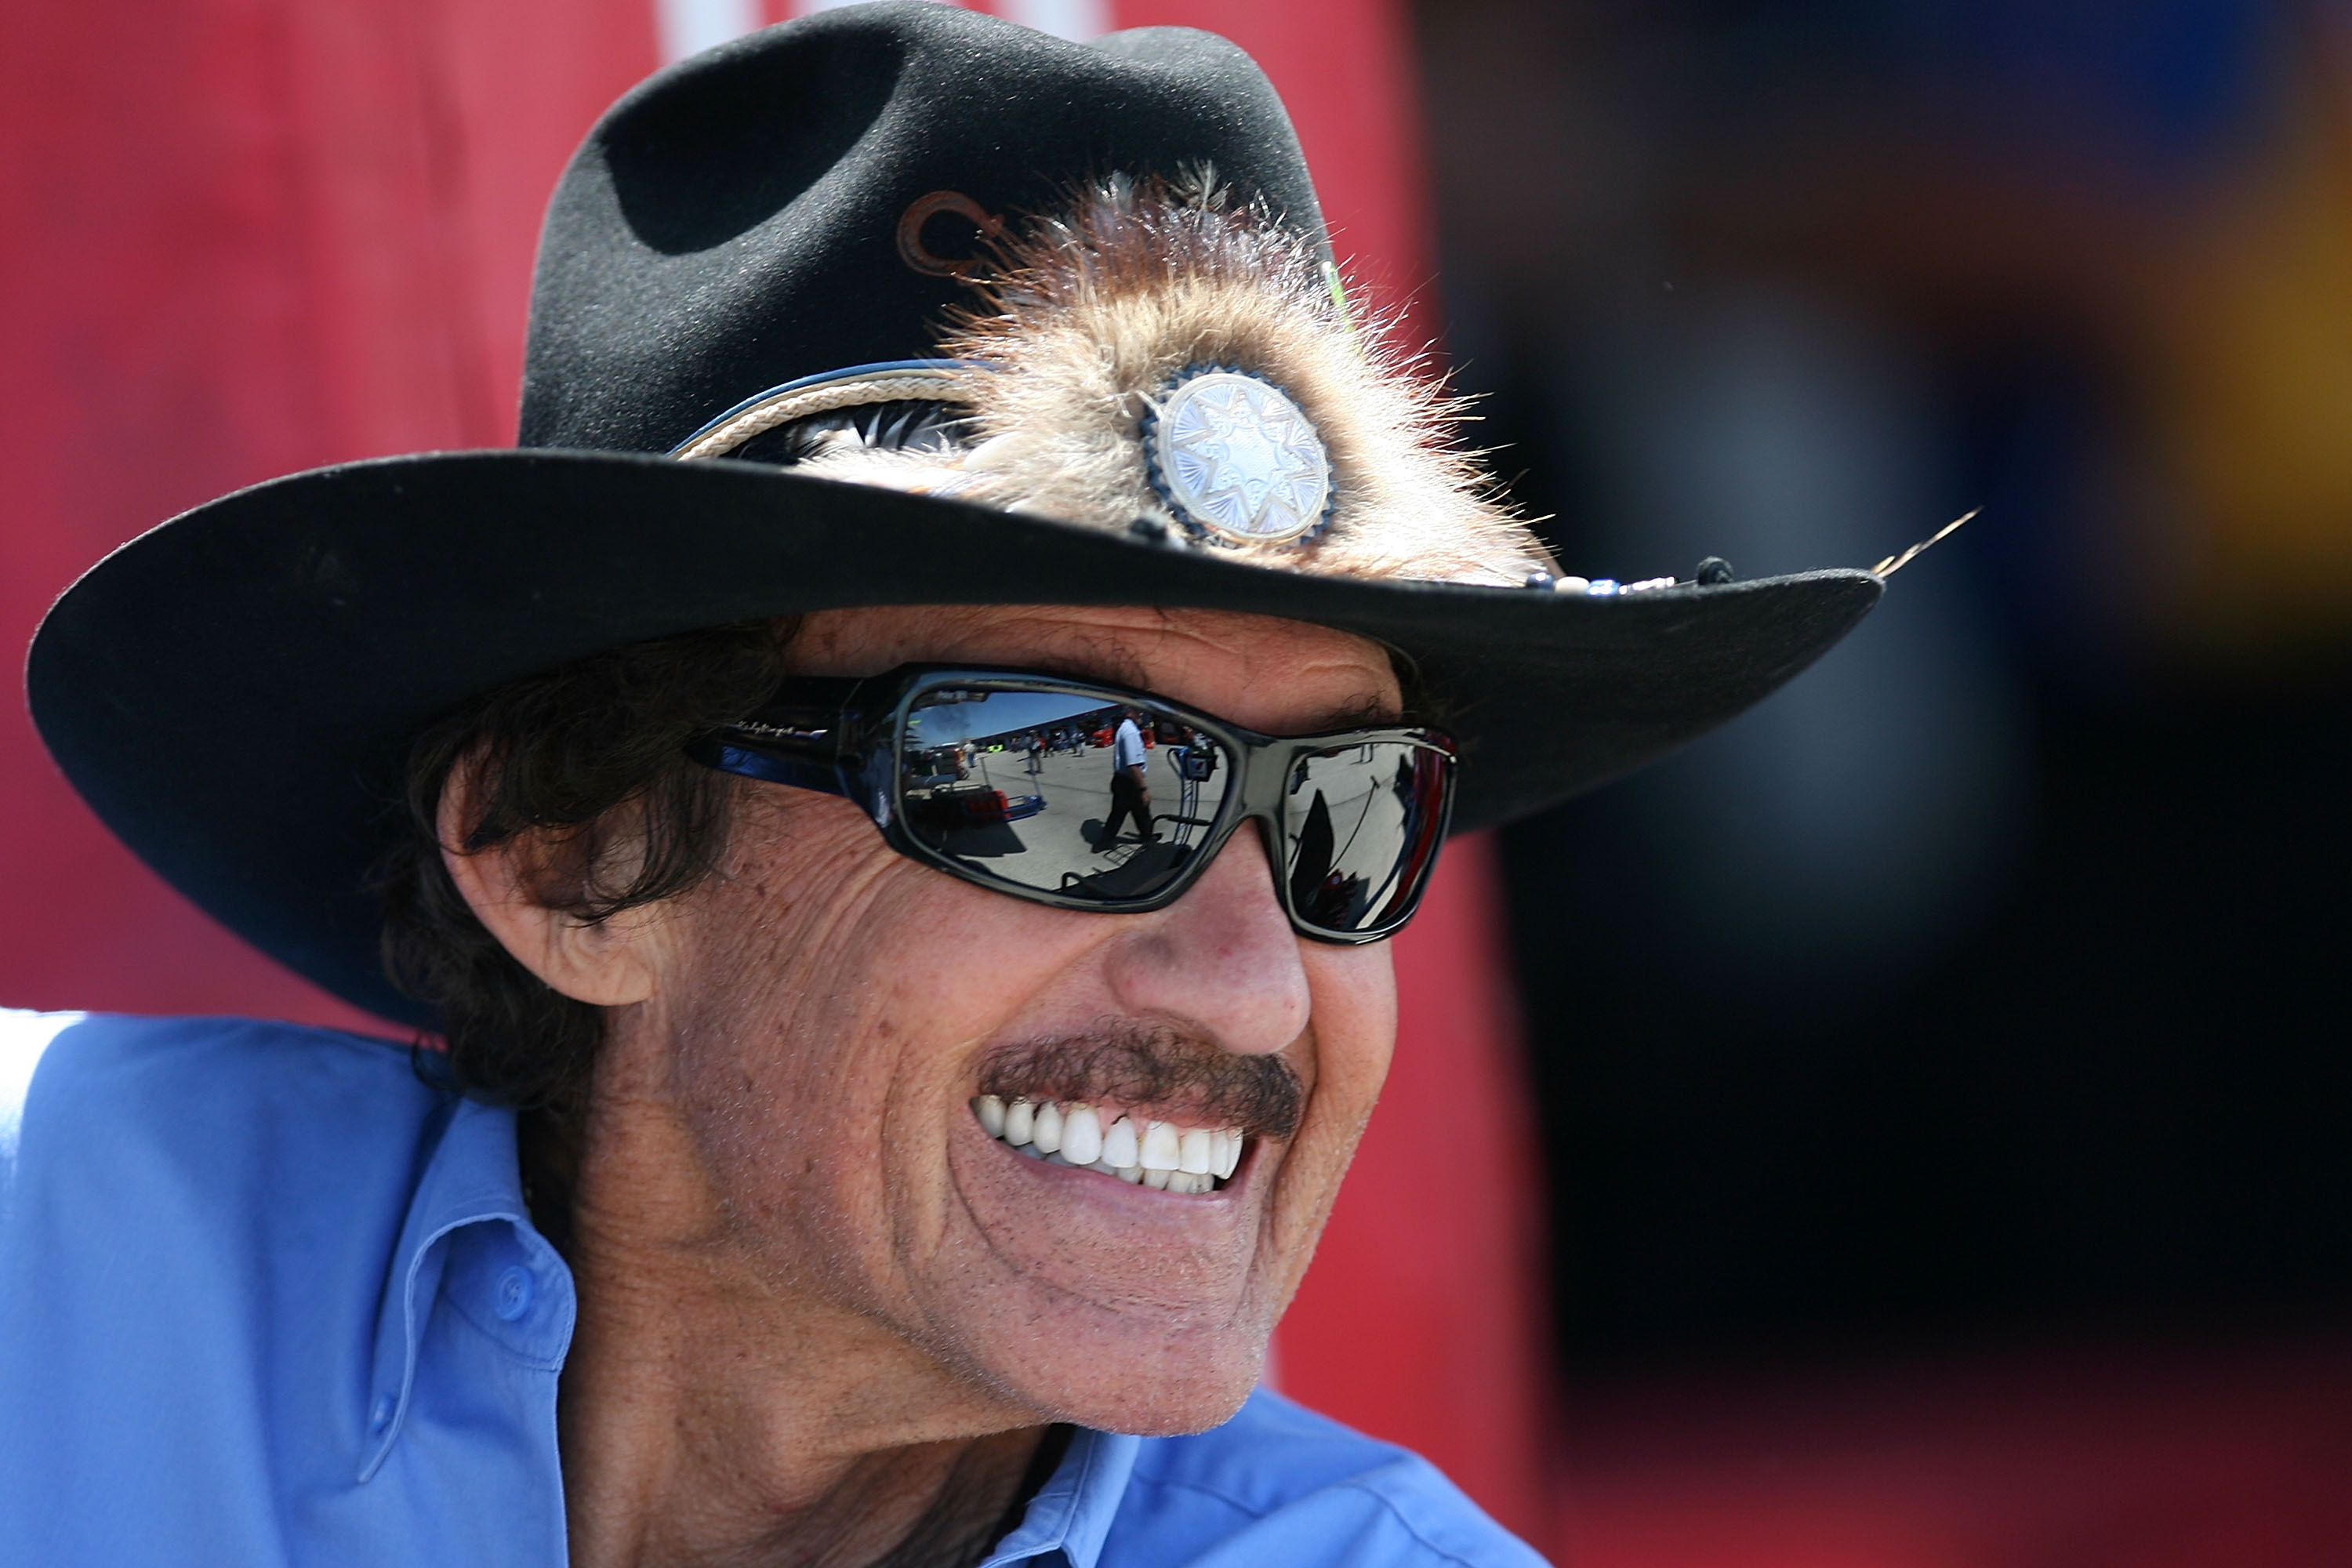 JOLIET, IL - JULY 09:  NASCAR legend Richard Petty looks on from the garage area during practice for the NASCAR Sprint Cup Series LIFELOCK.COM 400 at the Chicagoland Speedway on July 9, 2010 in Joliet, Illinois.  (Photo by Chris Trotman/Getty Images for N